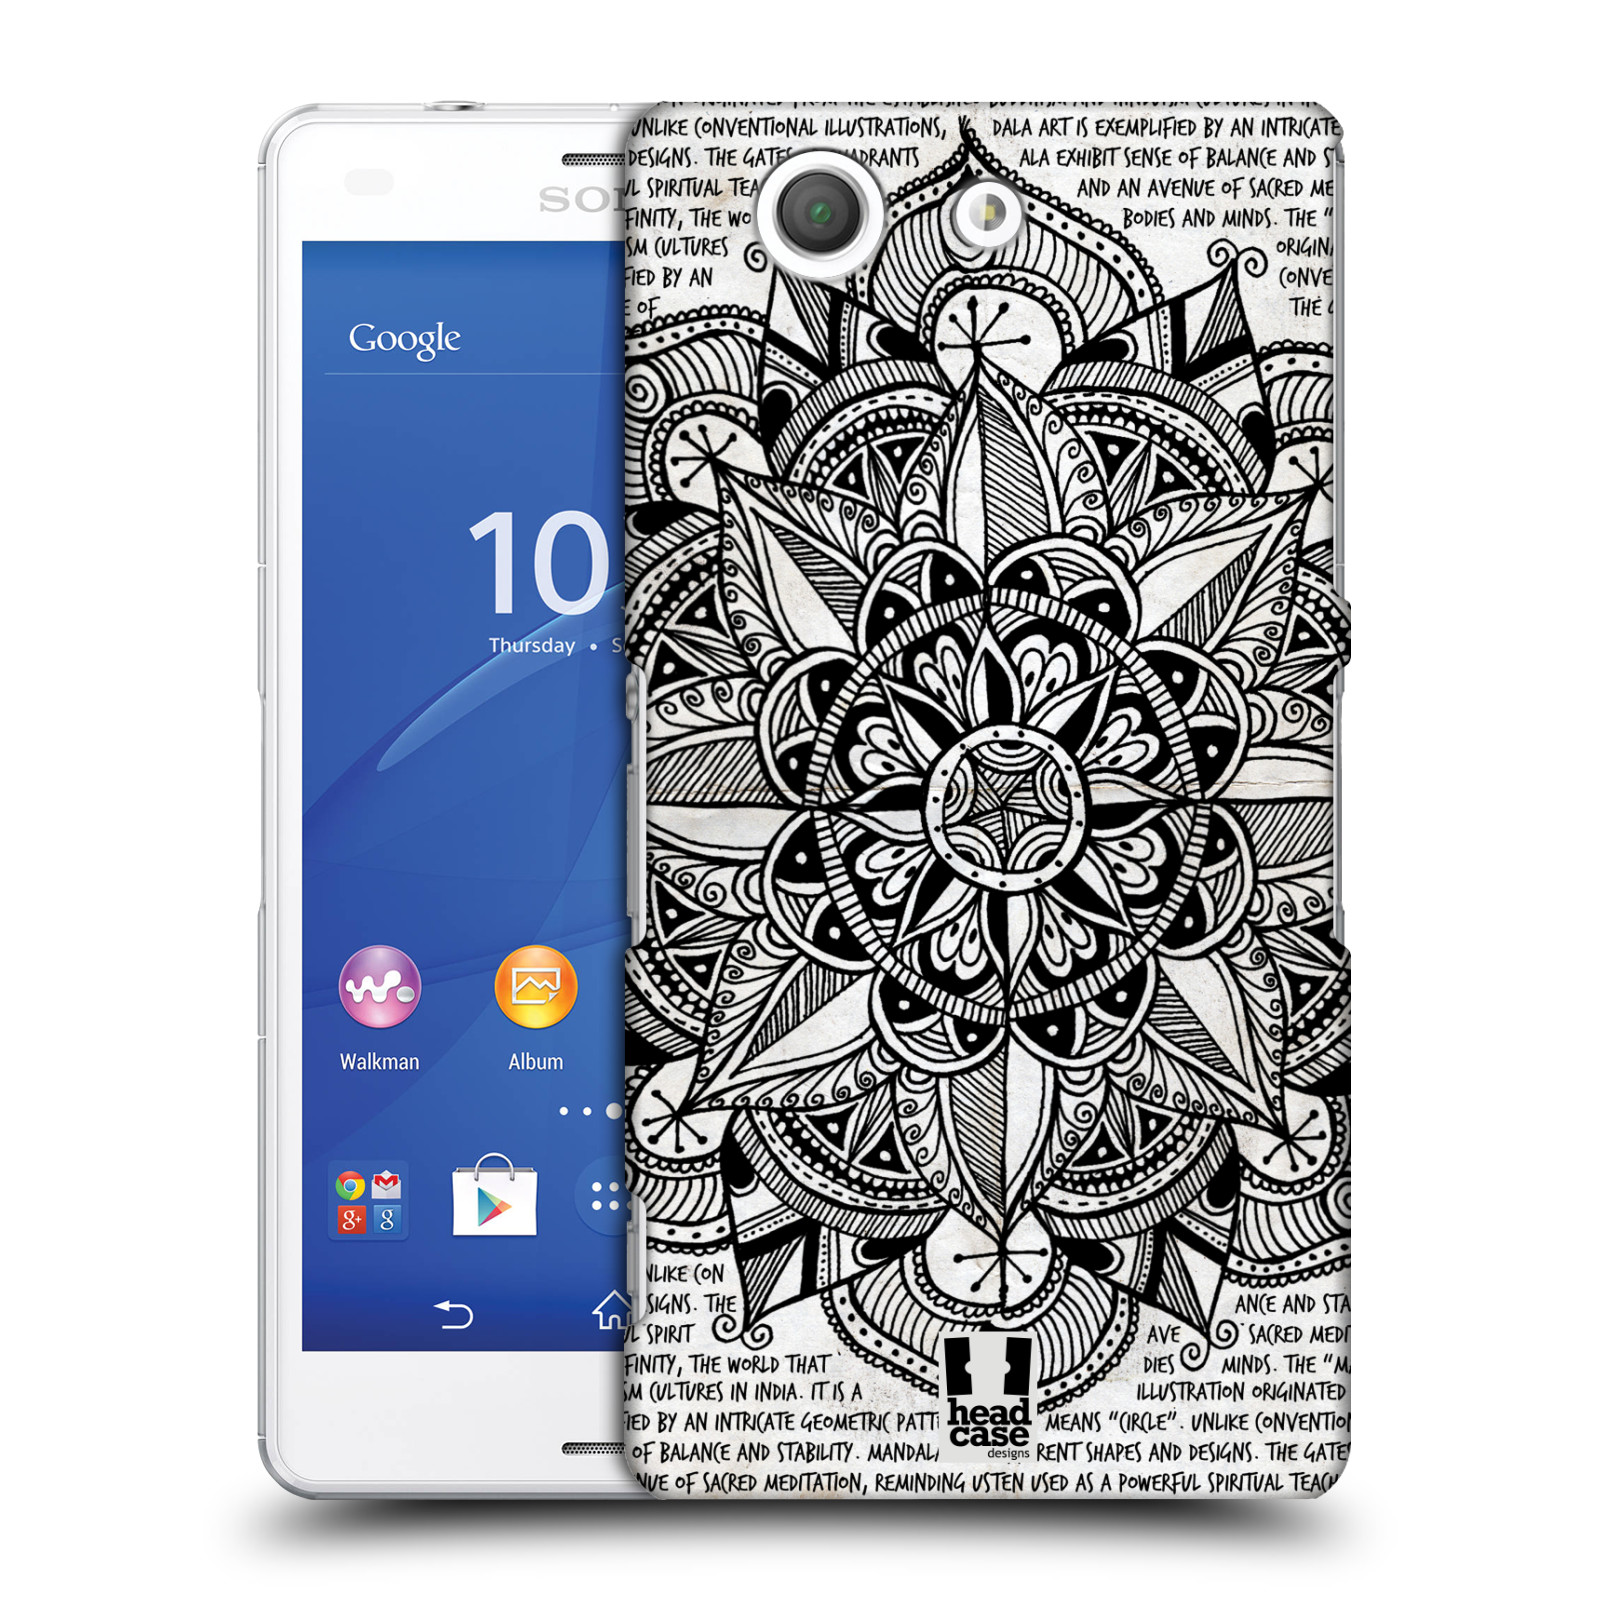 HEAD CASE DESIGNS MANDALA DOODLES CASE COVER FOR SONY XPERIA Z3 COMPACT D5803